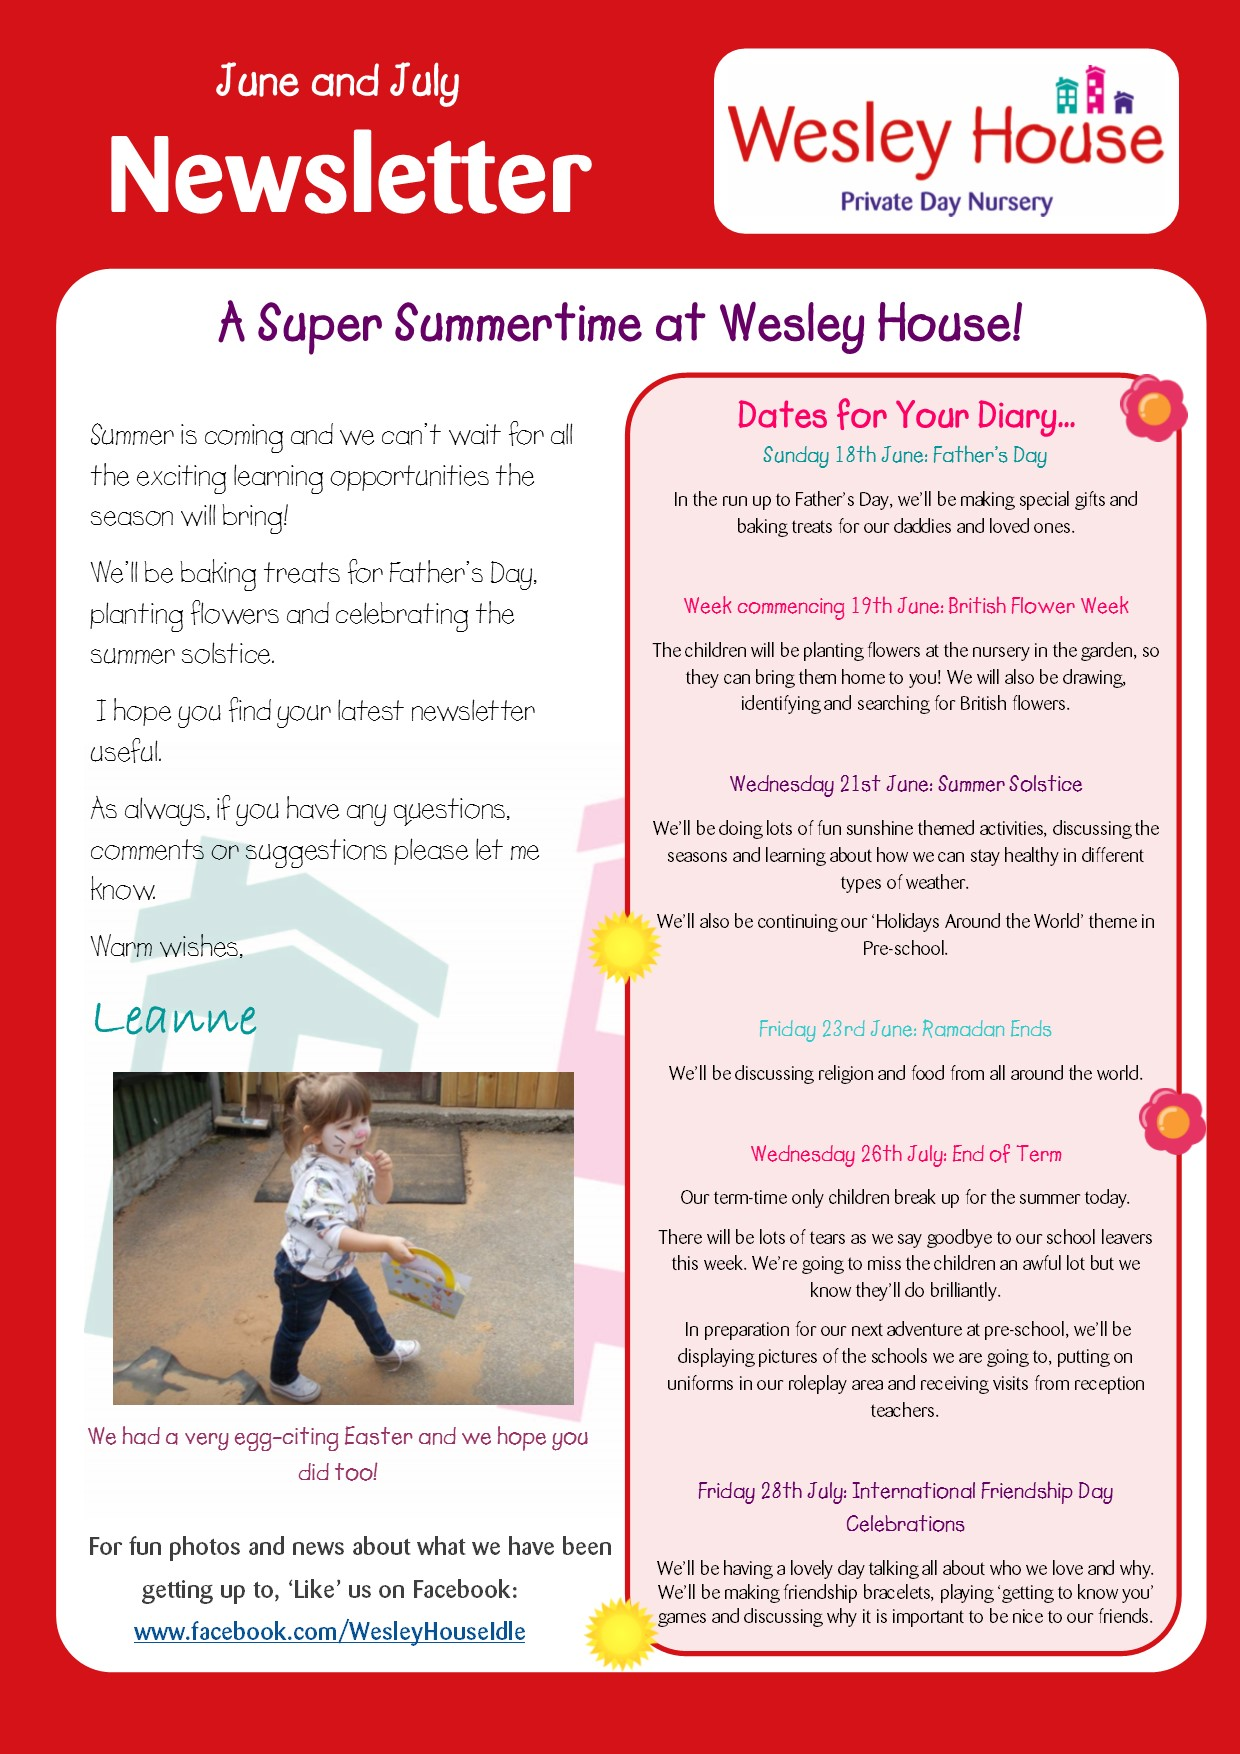 Wesley house nursery in idle read our june july newsletter for Wesley house